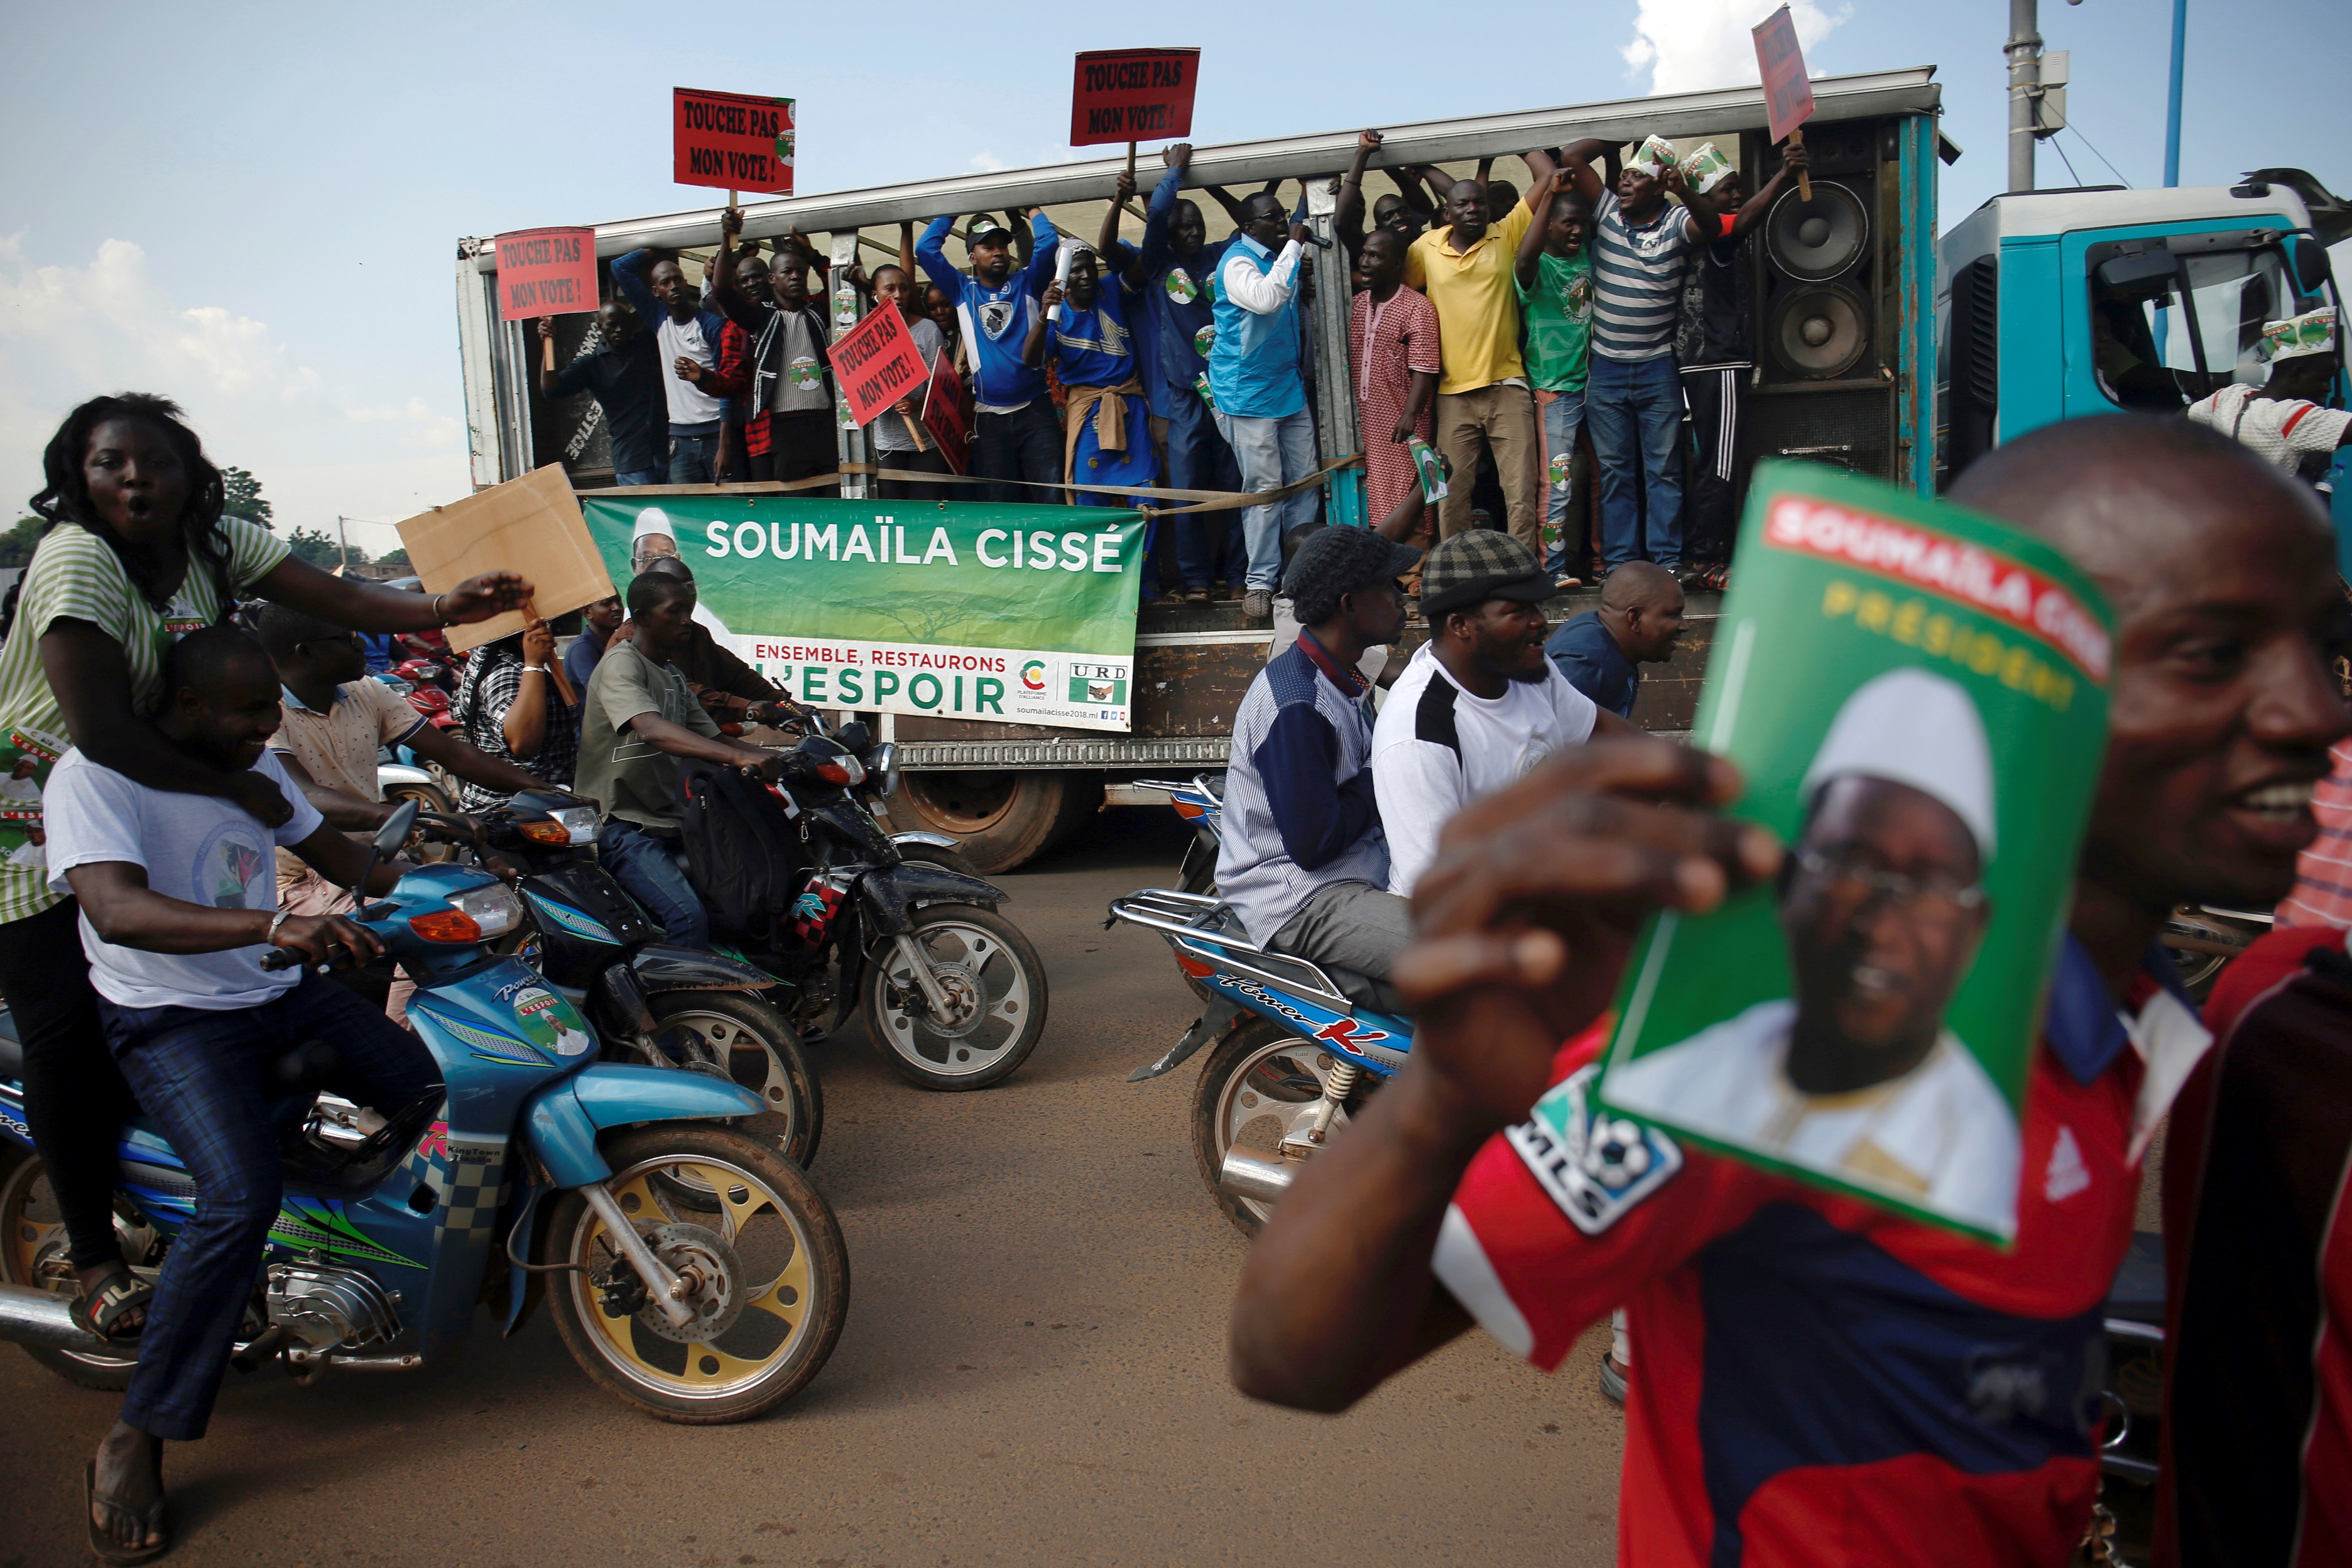 Opposition supporters carry banners and pictures of Soumaila Cisse, leader of opposition party URD (Union for the Republic and Democracy) as they protest along a street in Bamako, Mali August 16, 2018. REUTERS/Luc Gnago - RC1ED19D7F60